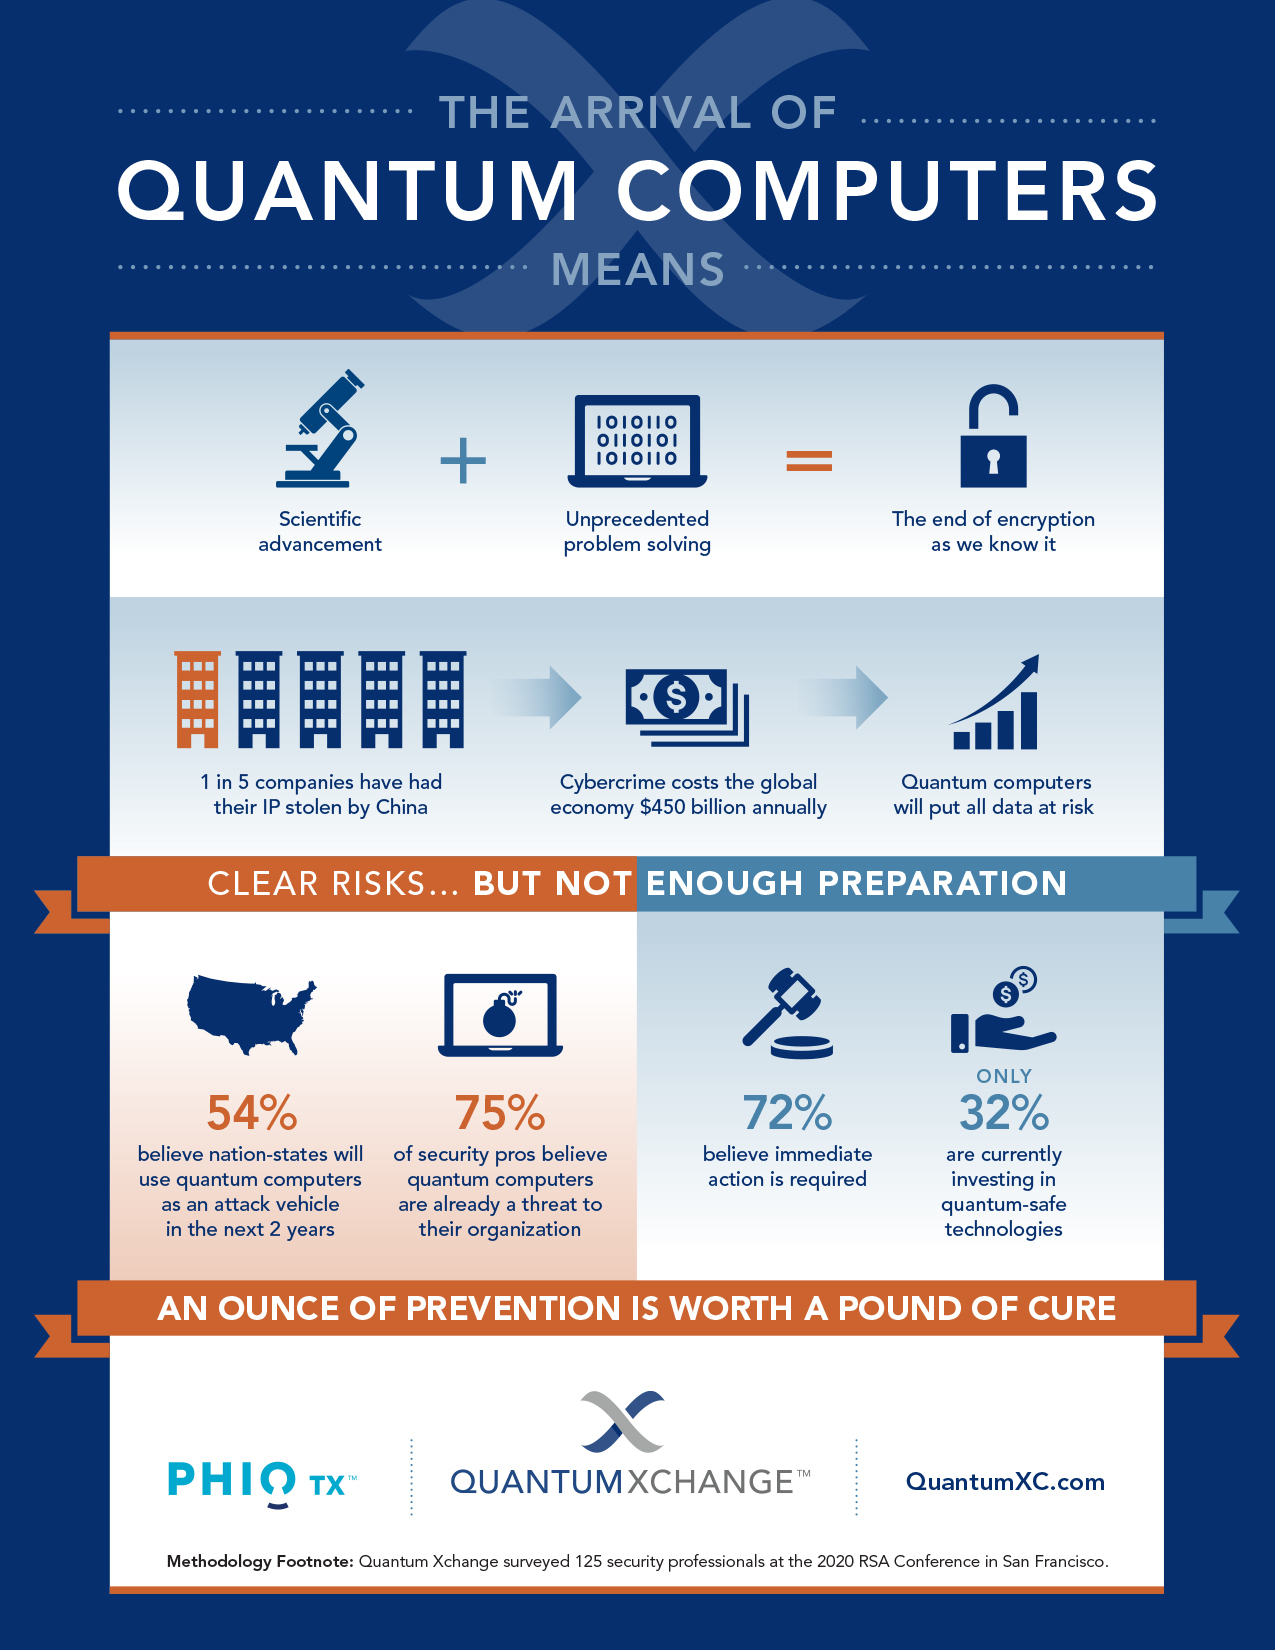 The Arrival of Quantum Computers